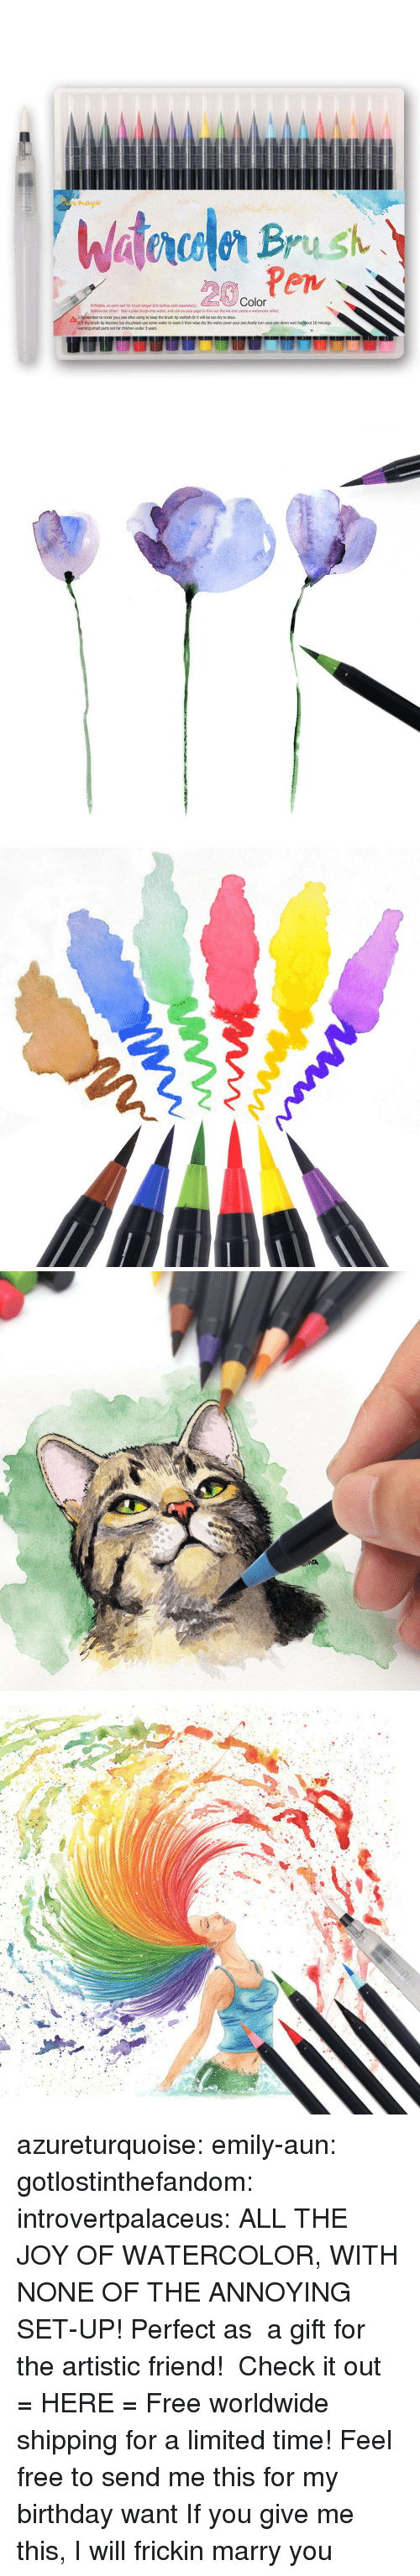 Birthday, Children, and Target: Color  Refilable, so pens last for much longer (ink bottles sold separately)  Watercolor Effect Dab a plain brush into water, and use on your page to thin out the ink and create a watercolor effect  LRemember to cover your pen after using to keep the brush tip weittsh Or it will be too dry to draw.  2.If the brush tip become too dry,please use some water to wash it then wipe dry the water,cover your pen,finally turm your pen down wait forhout 10 minutgs.  warning small parts not for children under 3 years azureturquoise: emily-aun:  gotlostinthefandom:  introvertpalaceus:  ALL THE JOY OF WATERCOLOR, WITH NONE OF THE ANNOYING SET-UP! Perfect as a gift for the artistic friend! Check it out = HERE =  Free worldwide shipping for a limited time!    Feel free to send me this for my birthday   want   If you give me this, I will frickin marry you